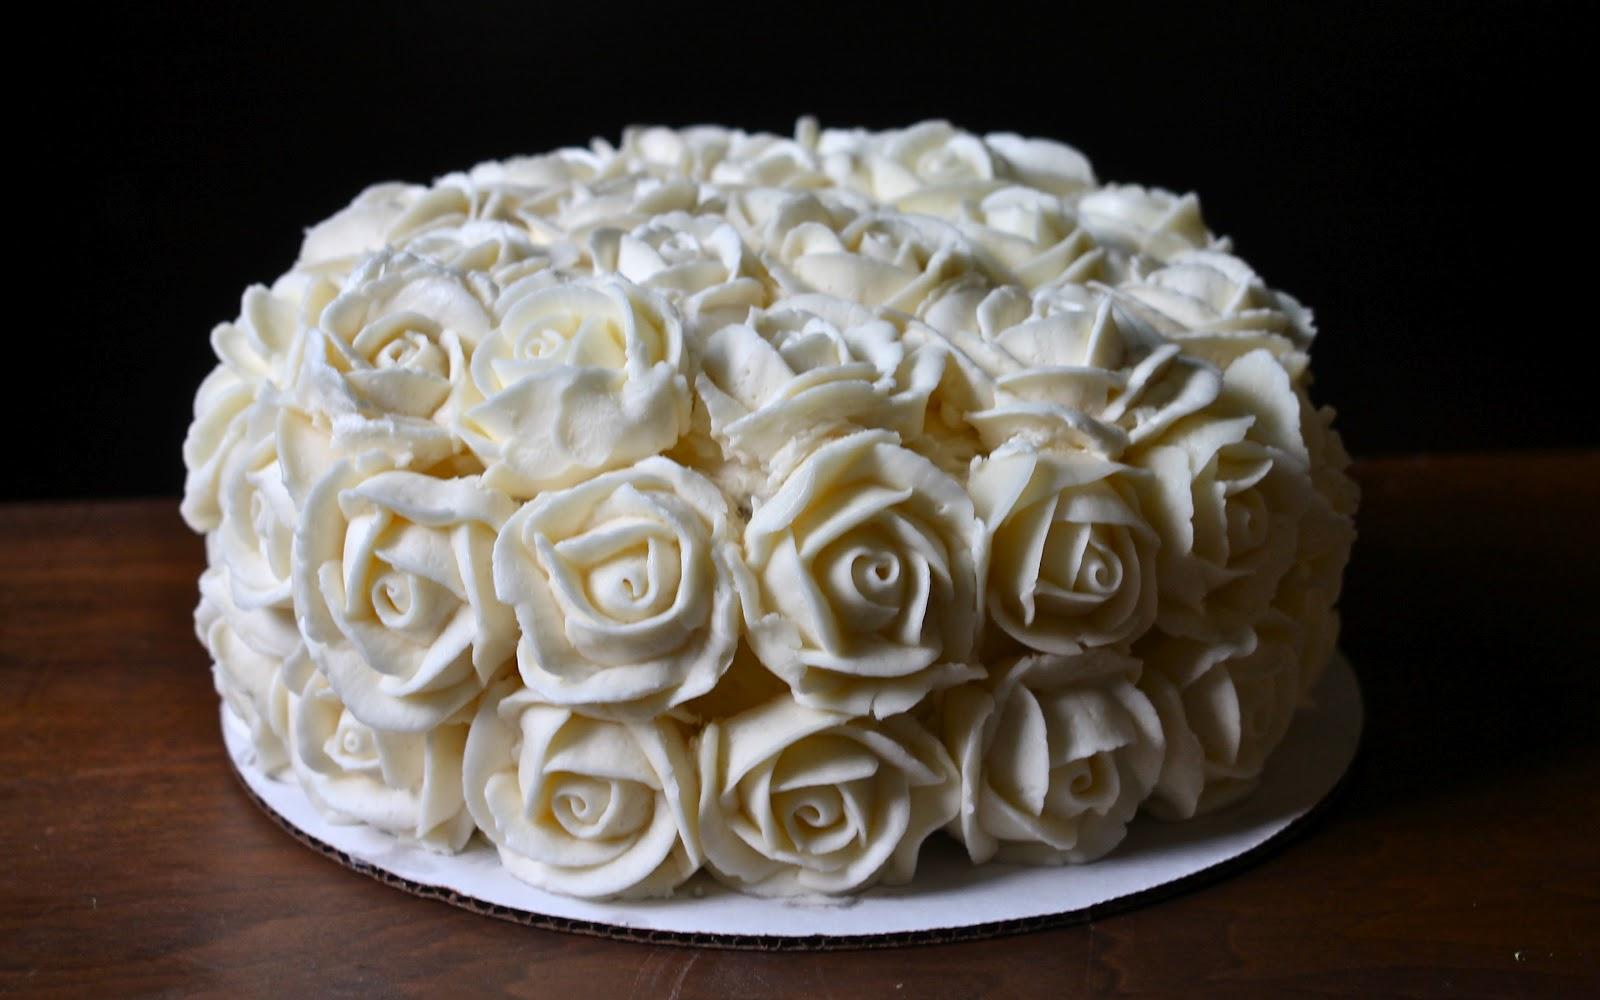 Cake With Roses Buttercream : Yammie s Noshery: Buttercream Roses With Video Tutorial